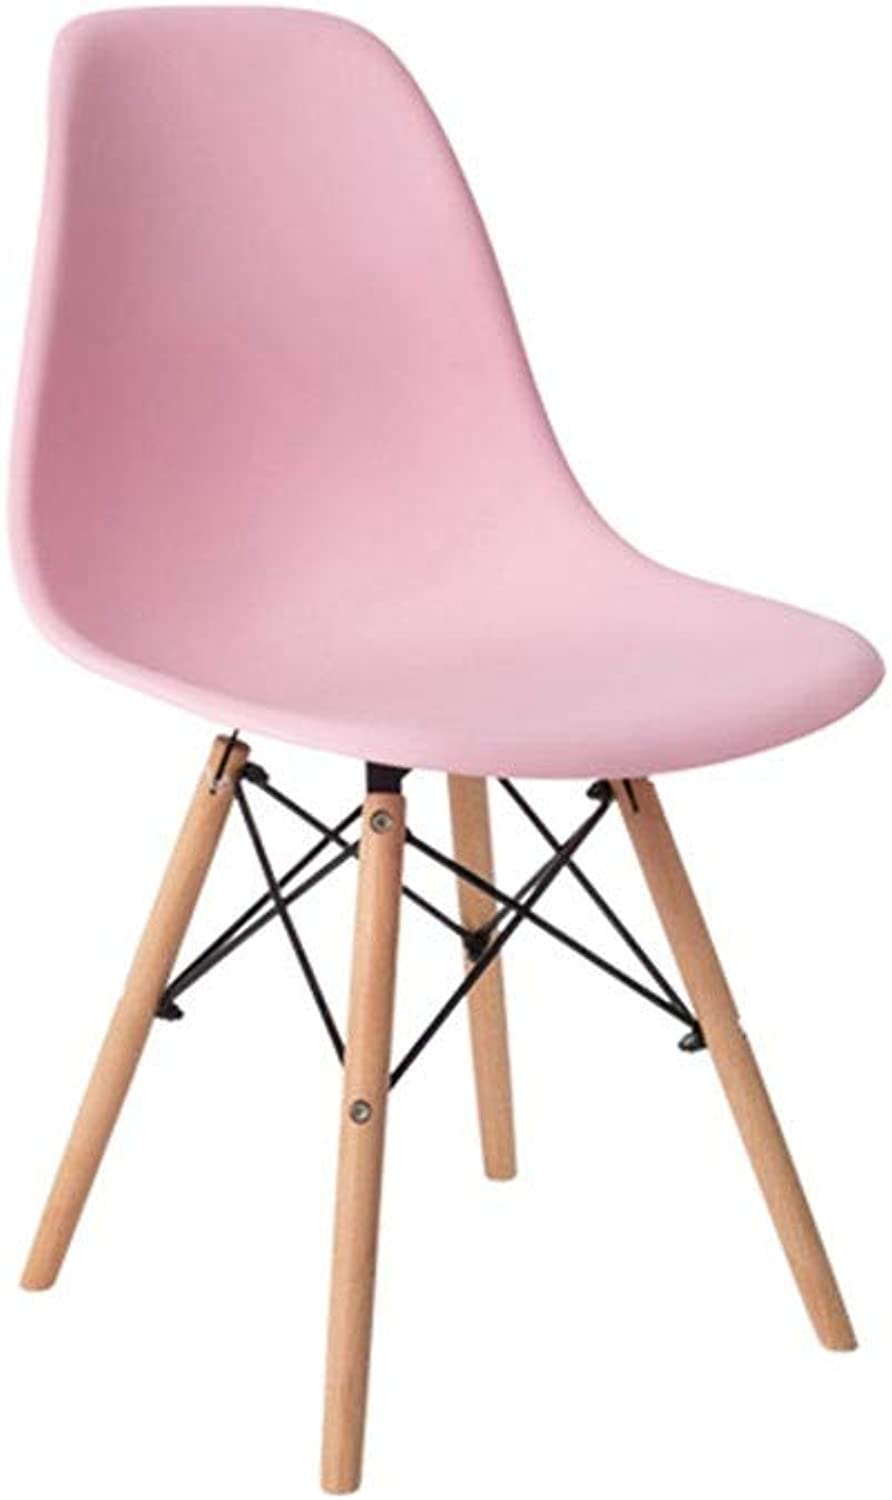 Dining Chair Tulip Plastic Wood Retro Modern Furniture for Living Room Desk Patio Terrace Office 4 kg (color   Pink)